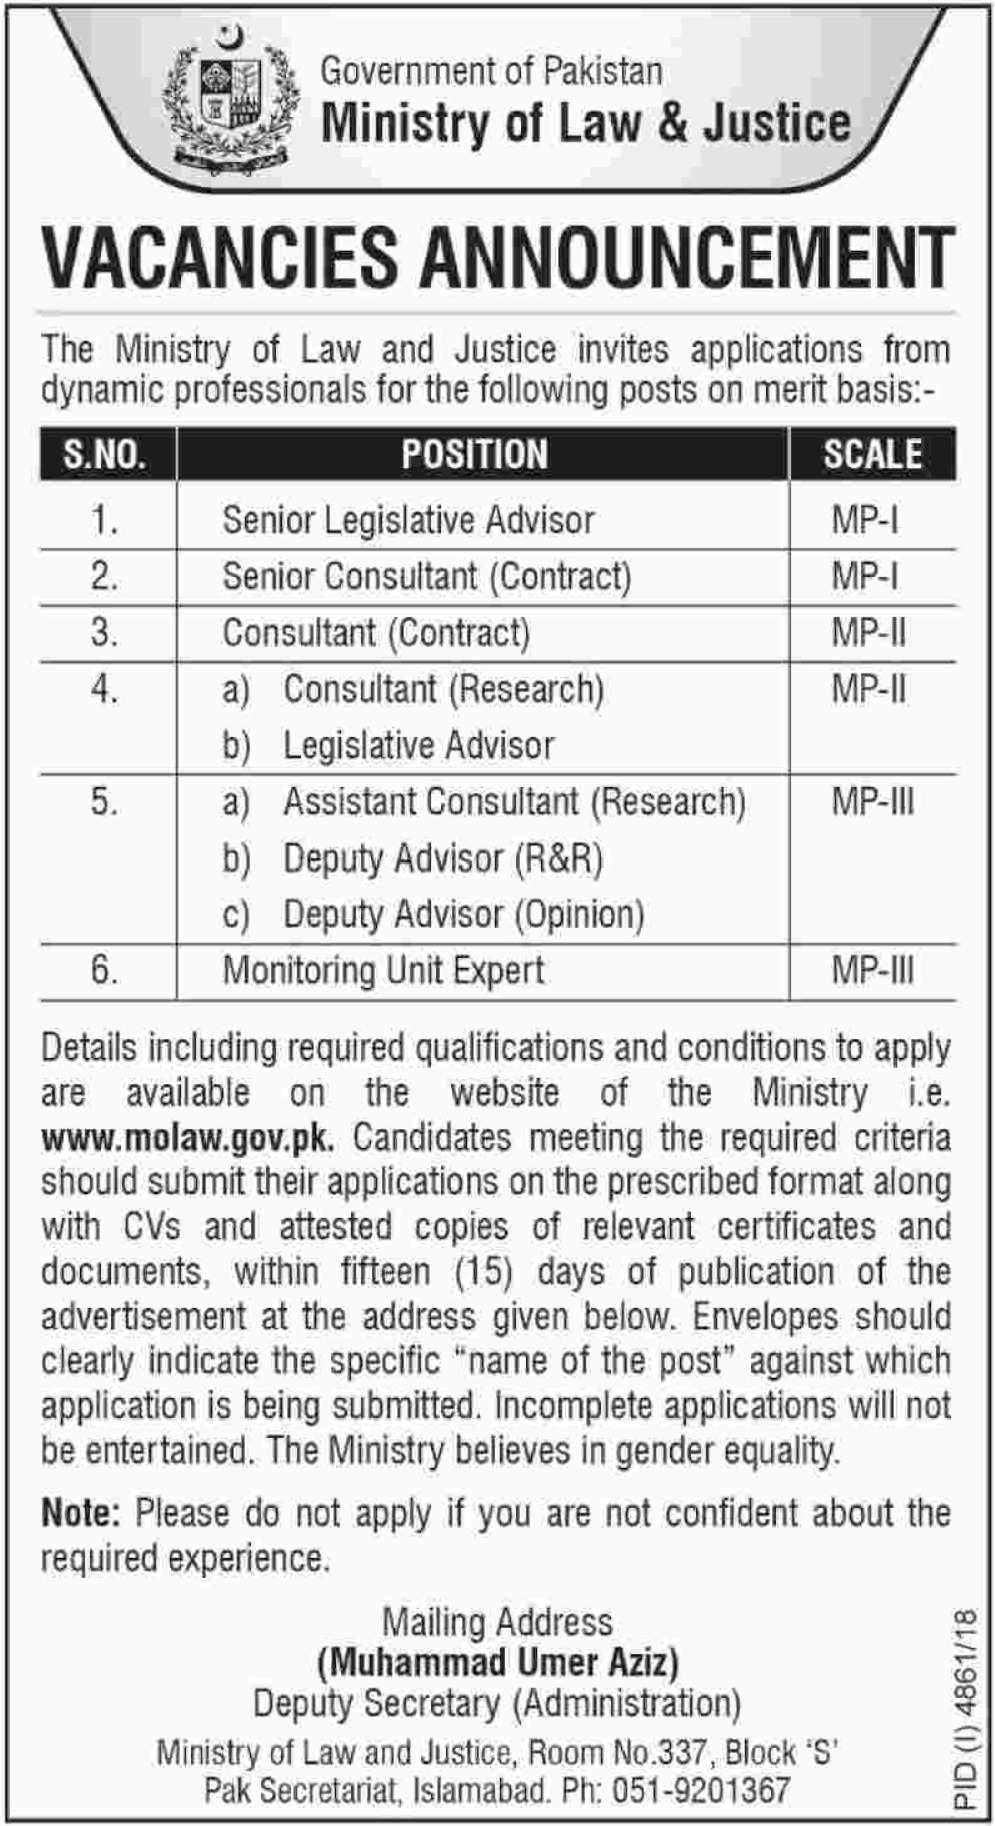 Ministry of Law & Justice Jobs 2019 Government of Pakistan Latest